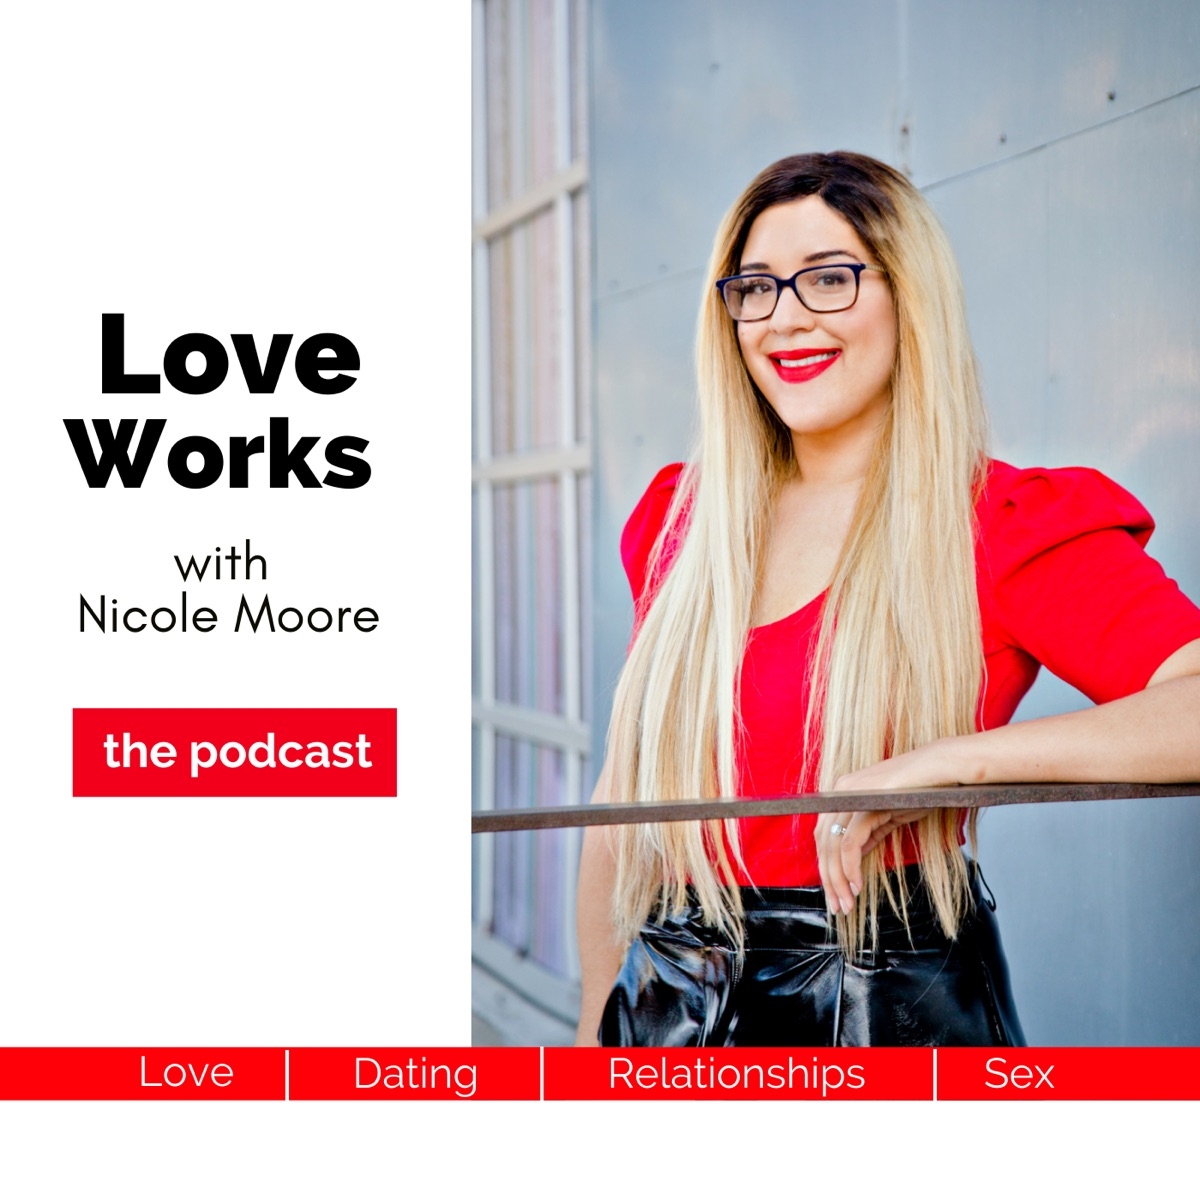 Love Works with Nicole Moore